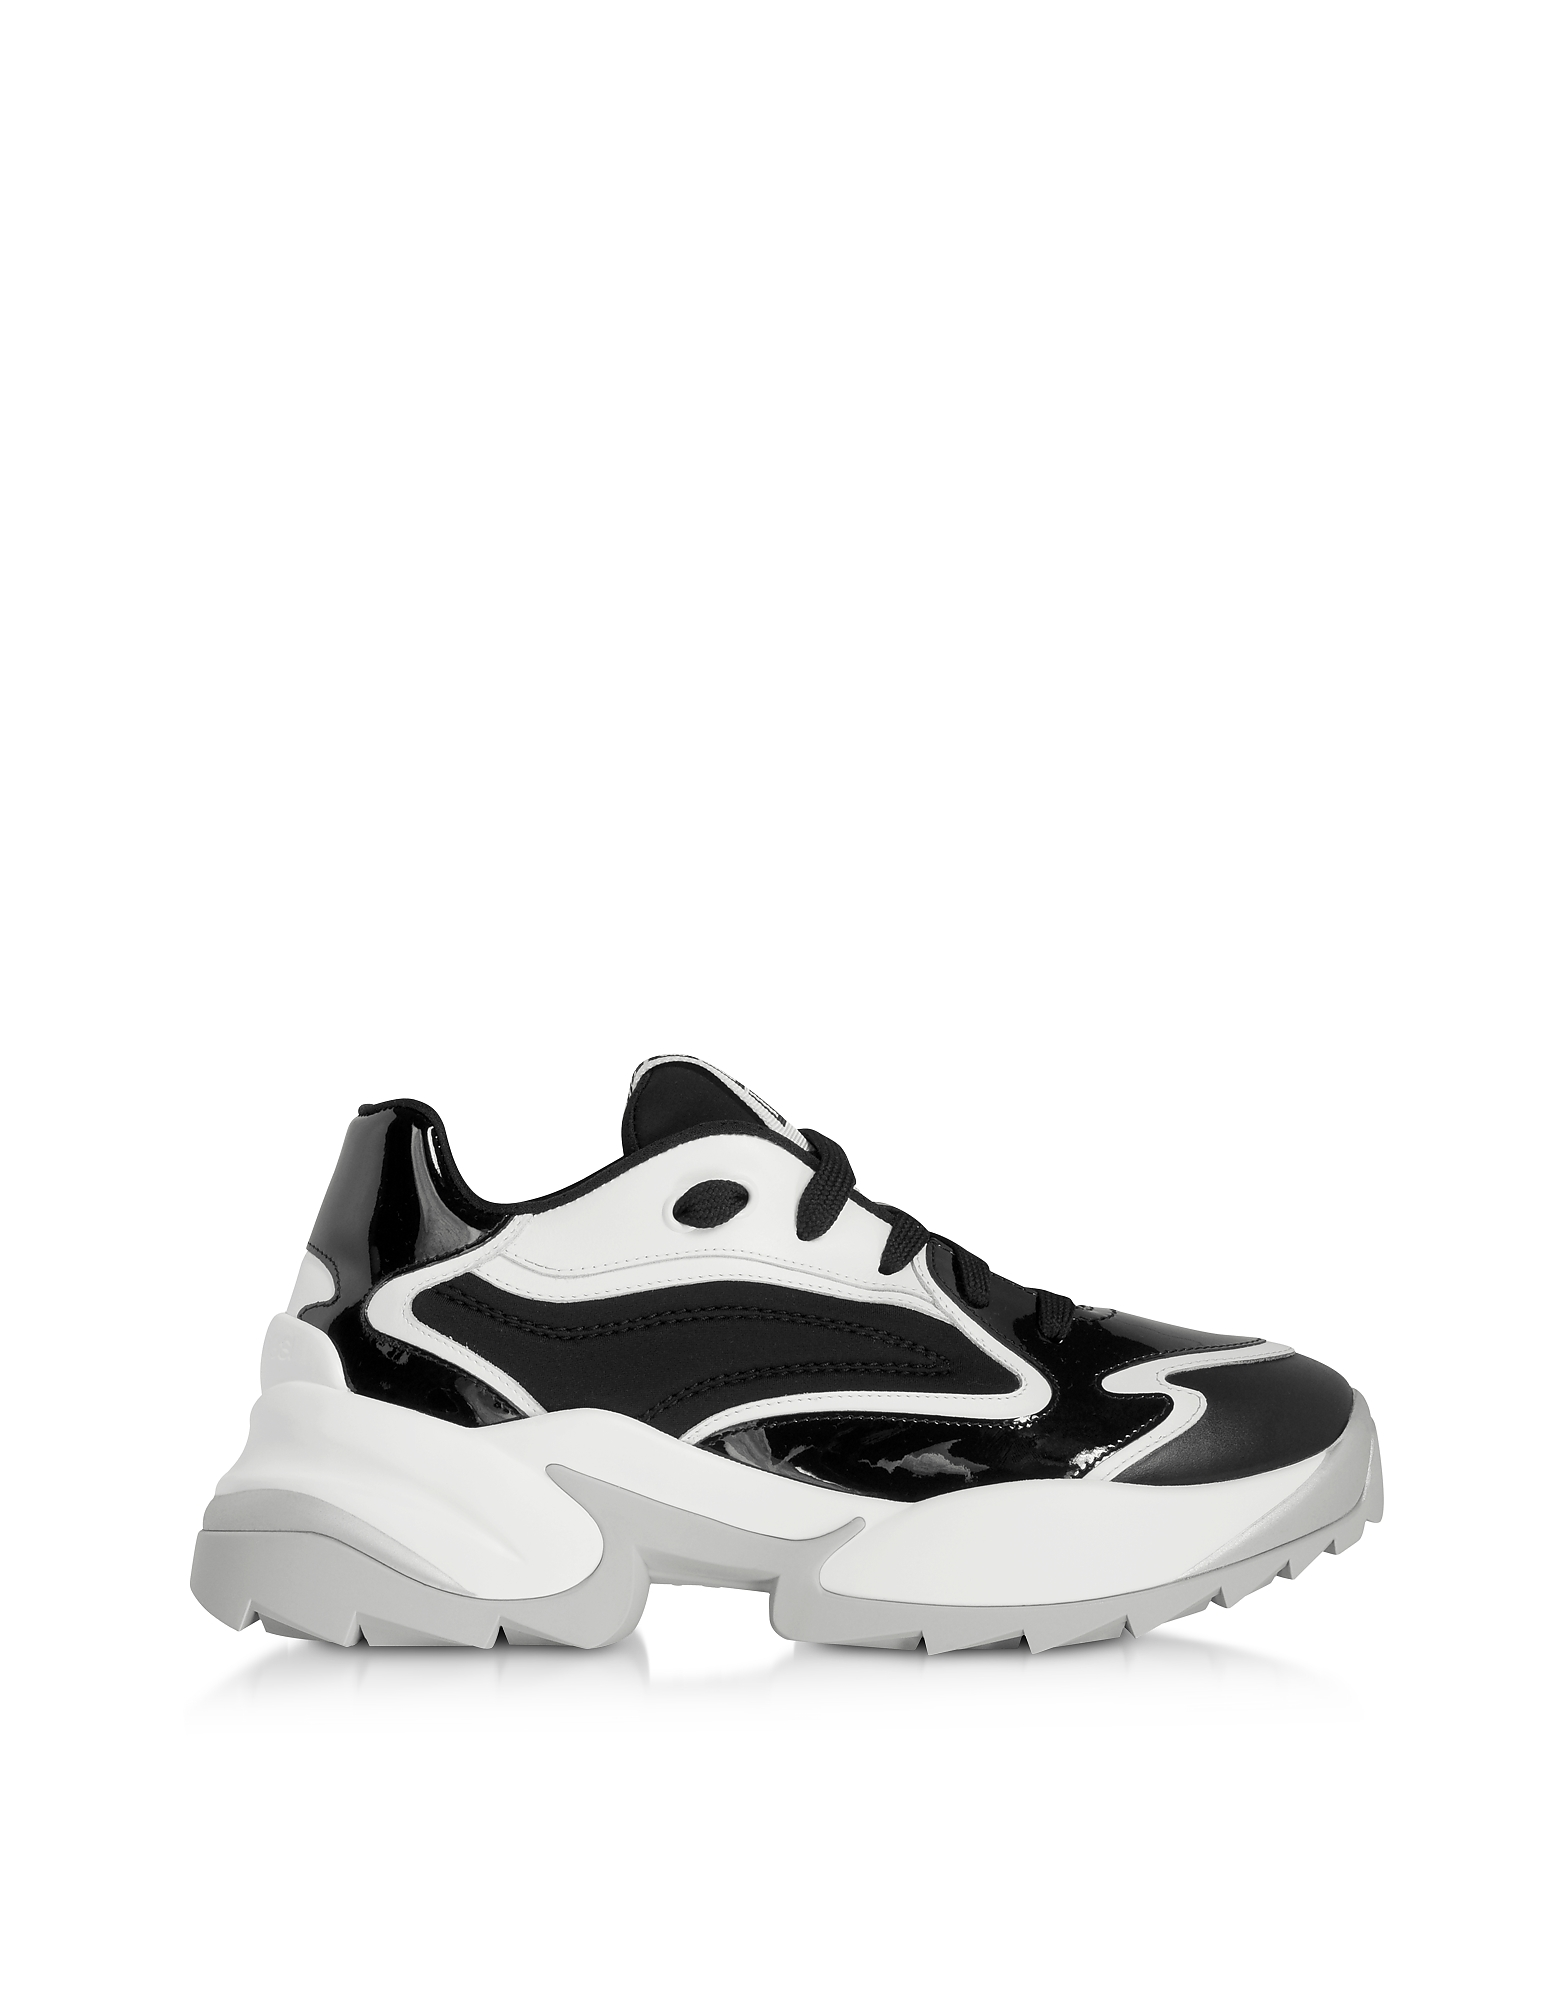 Black Combo Leather Extreme Sneakers